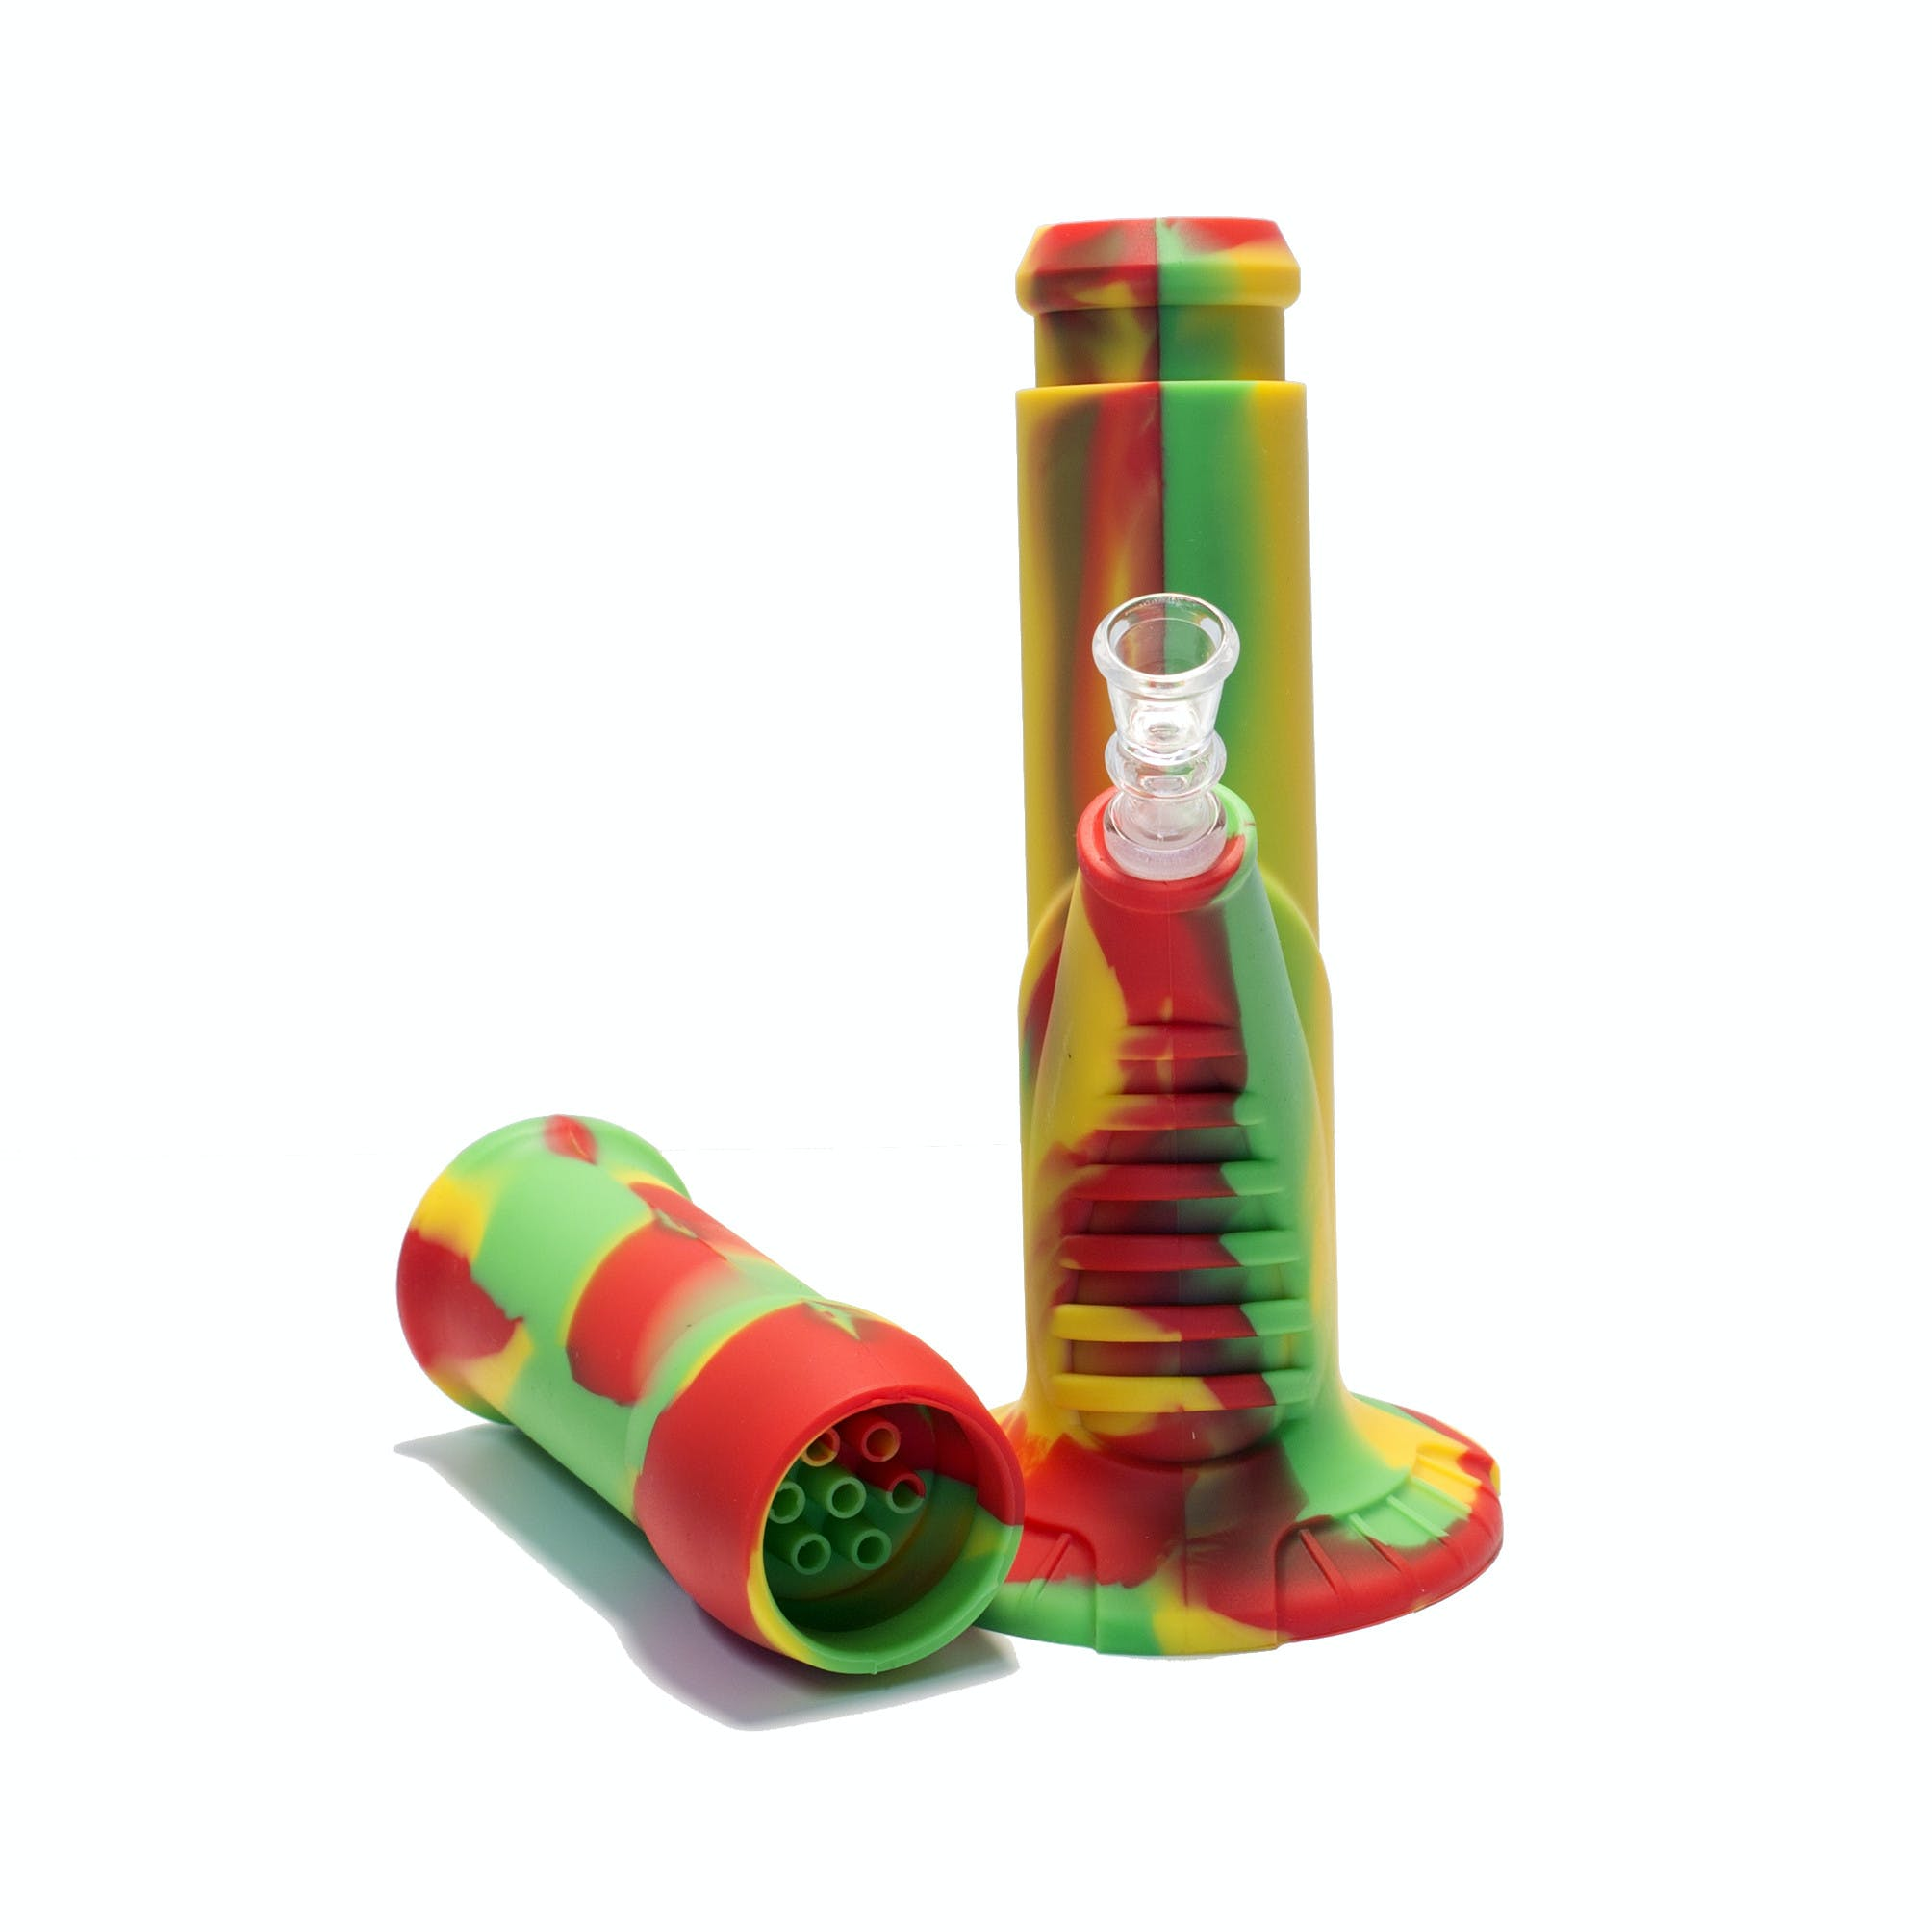 rasta silicone2 The United Nations just warned member states to keep recreational cannabis illegal